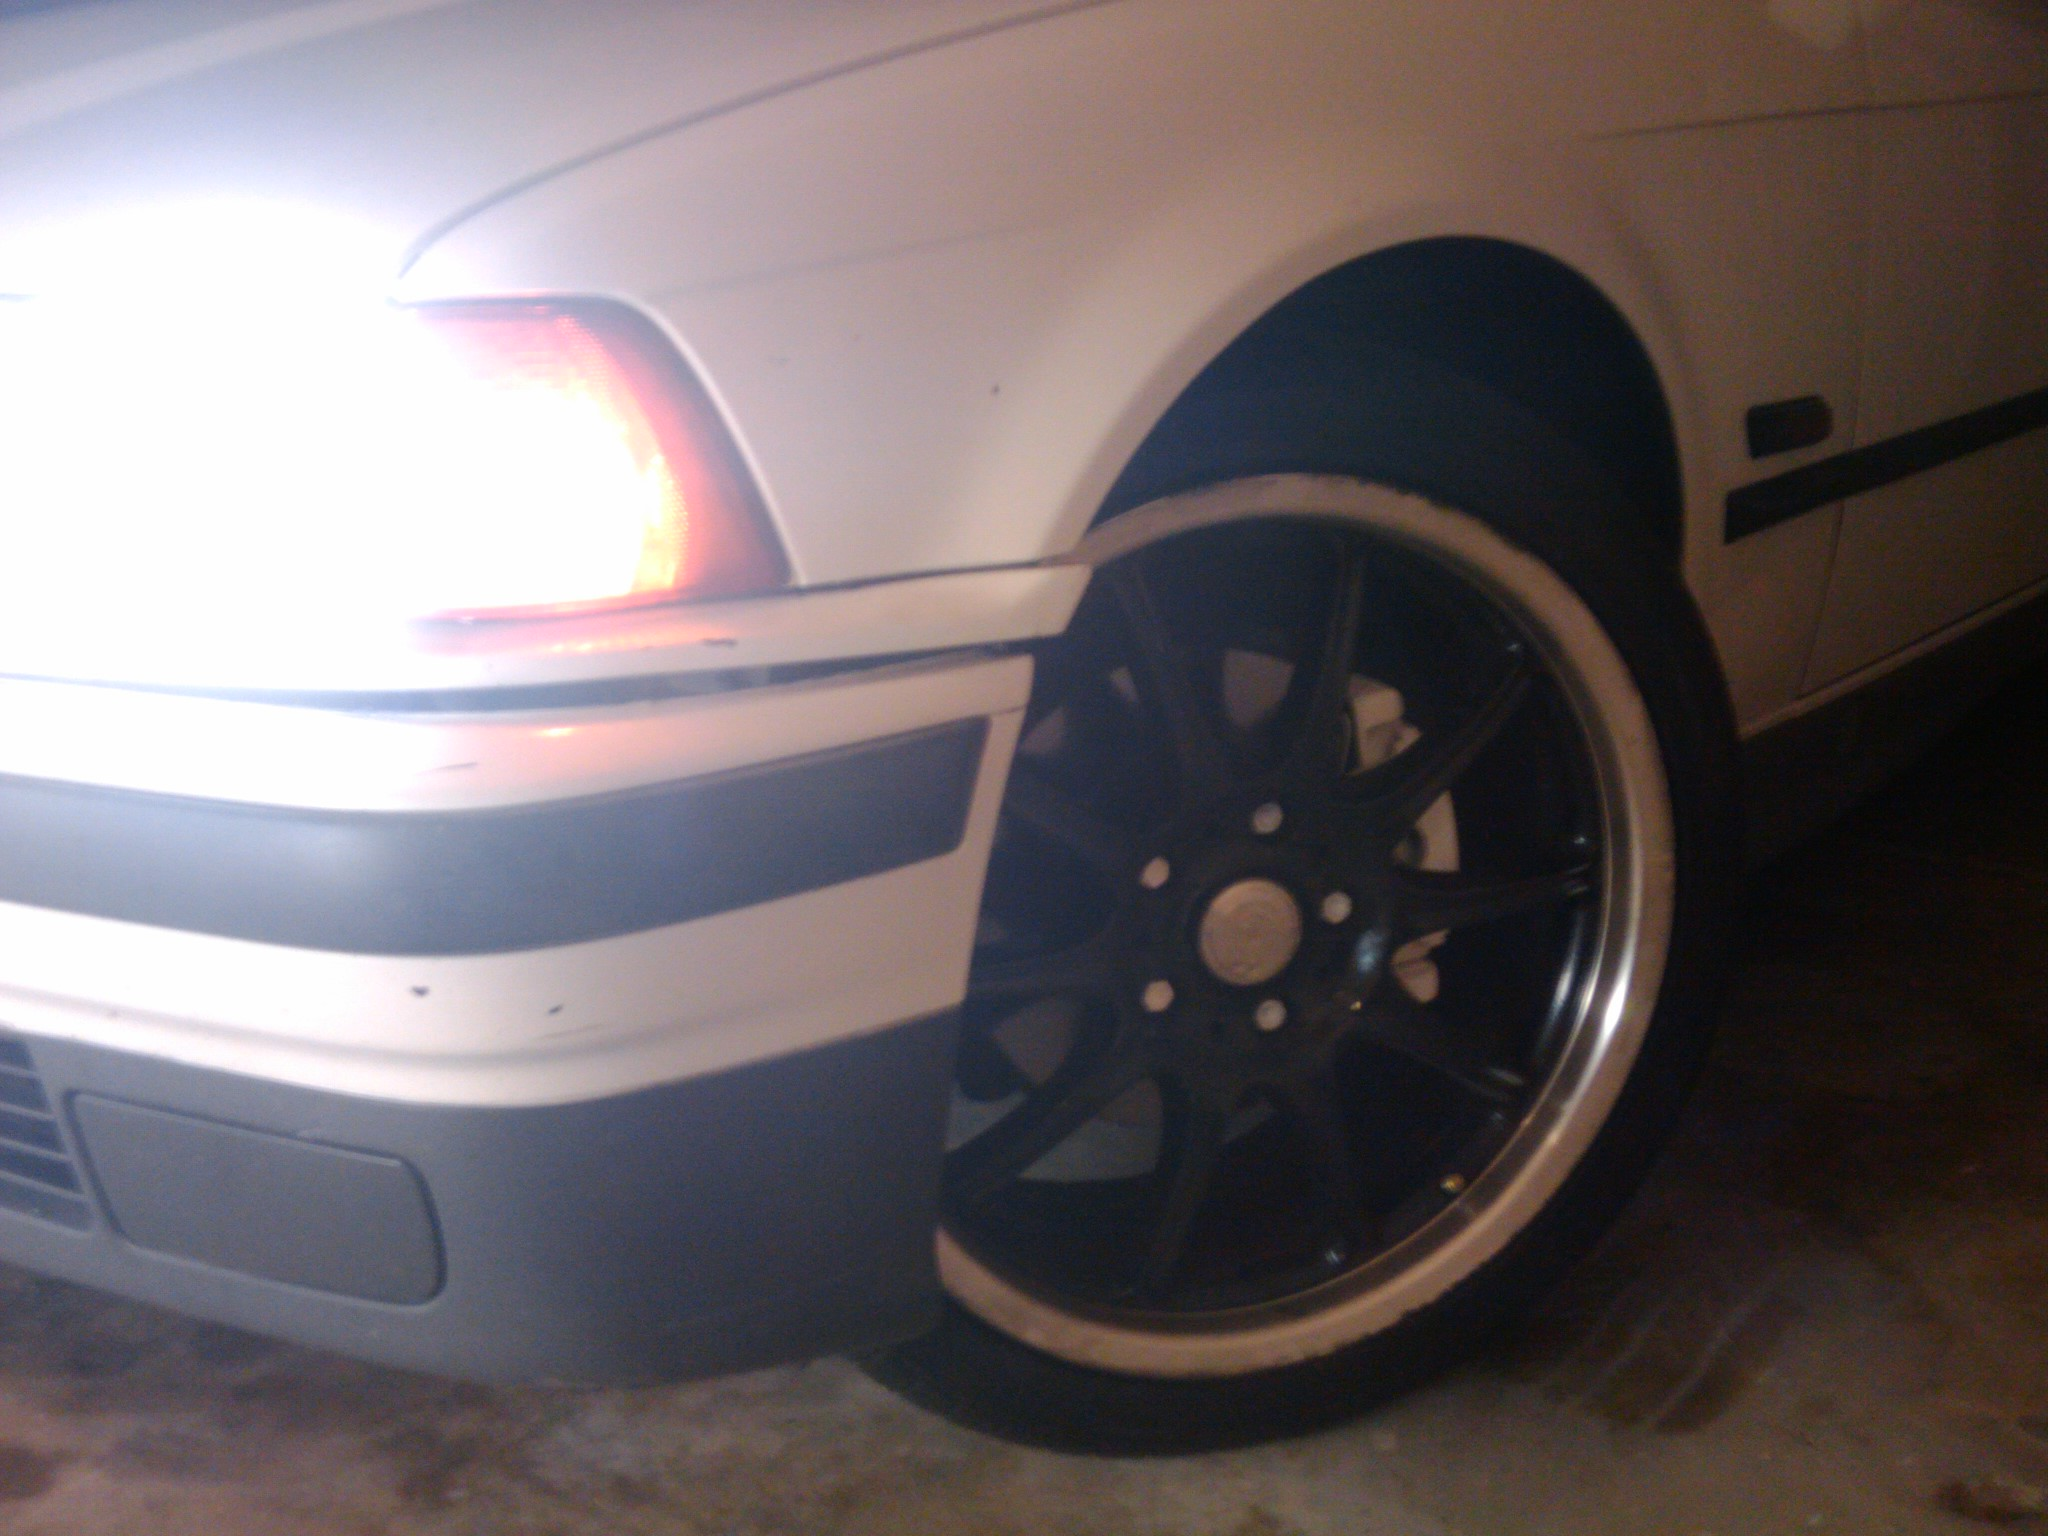 Ravmwpq moreover D Instrument Malfunction Lights Litcluster also Pic also D Inch Rims My Img in addition D Bmw E Headlight Conversion Img. on bmw e36 starter location